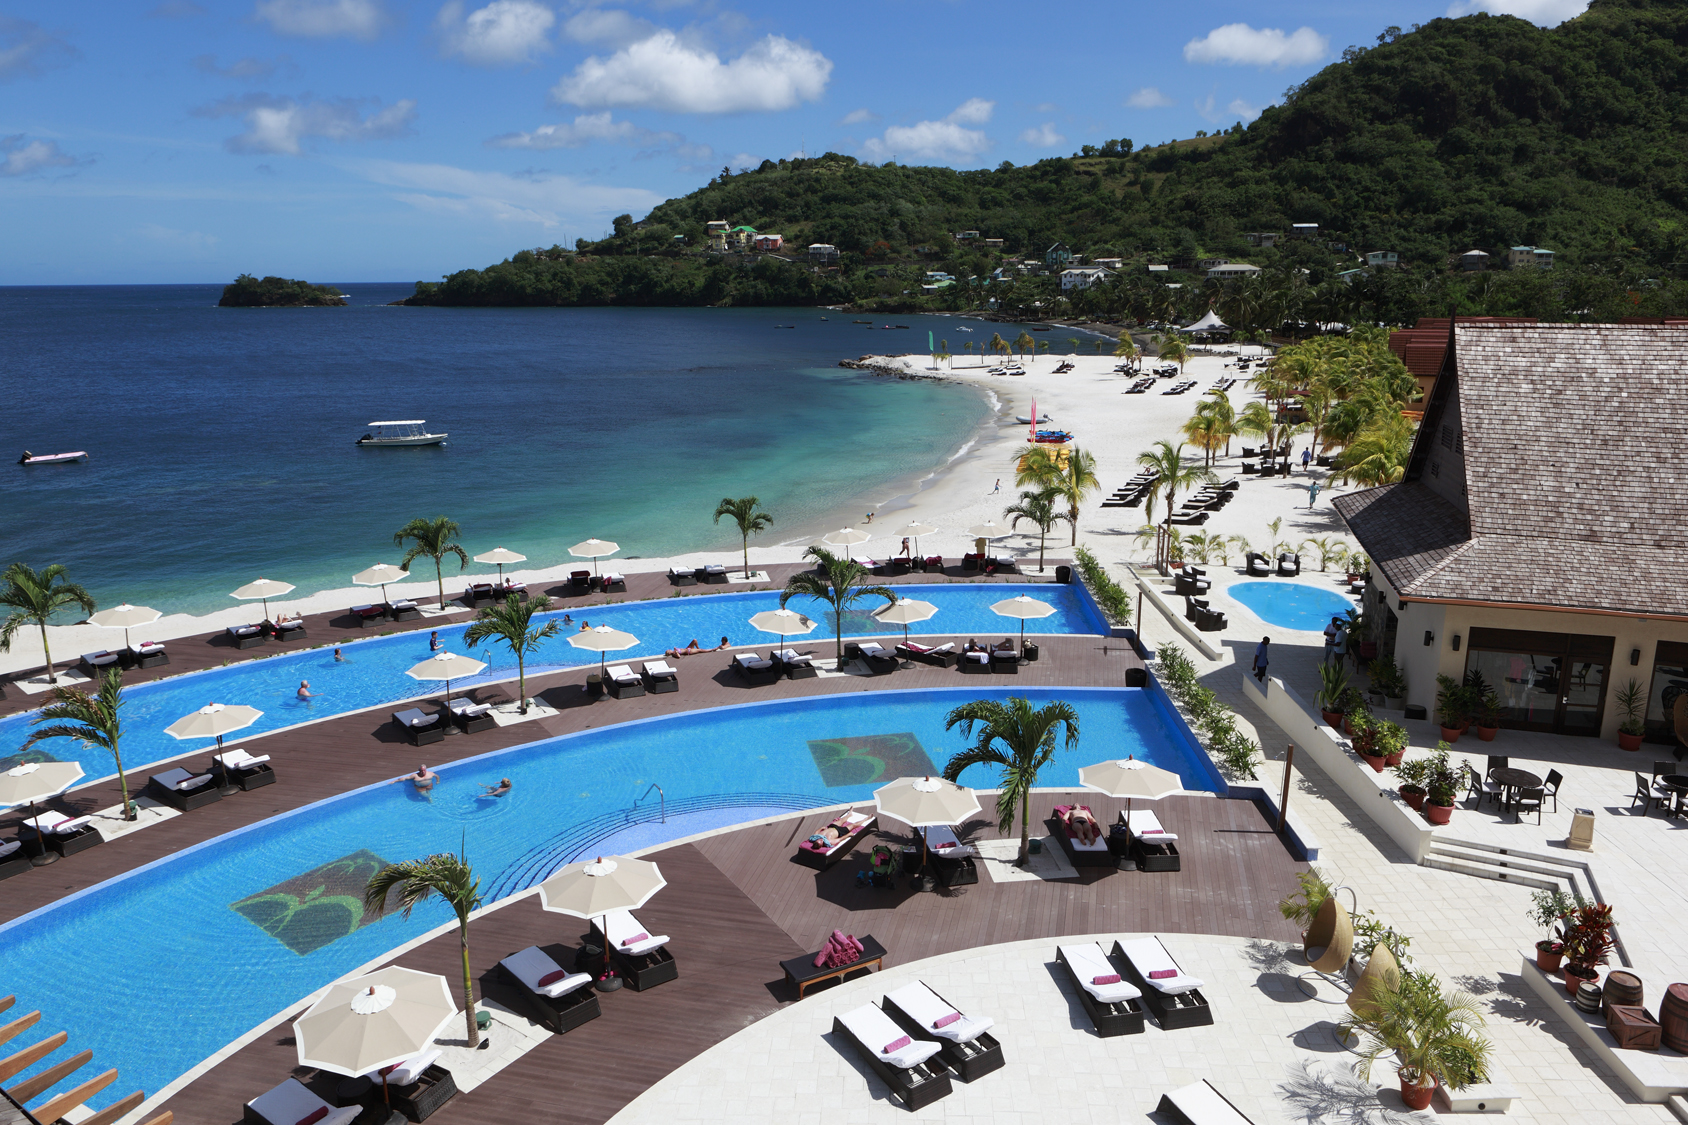 Caribbean 5 star experience buccament bay resort in st vincent the grenadines